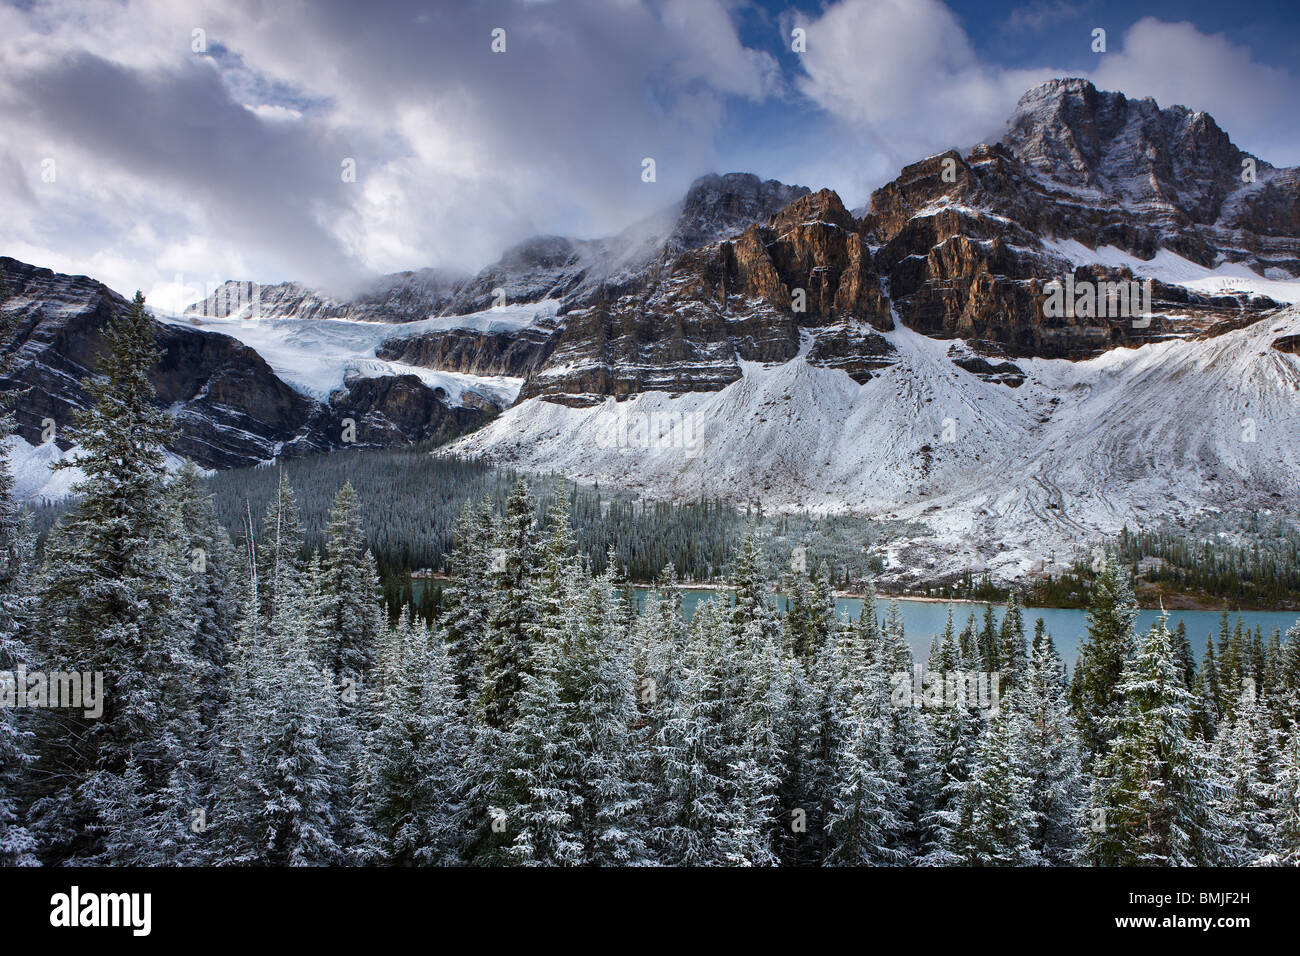 Mount Crowfoot & the Crowfoot Glacier above Bow Lake in the snow, Icefields Parkway, Banff National Park, Alberta, Stock Photo